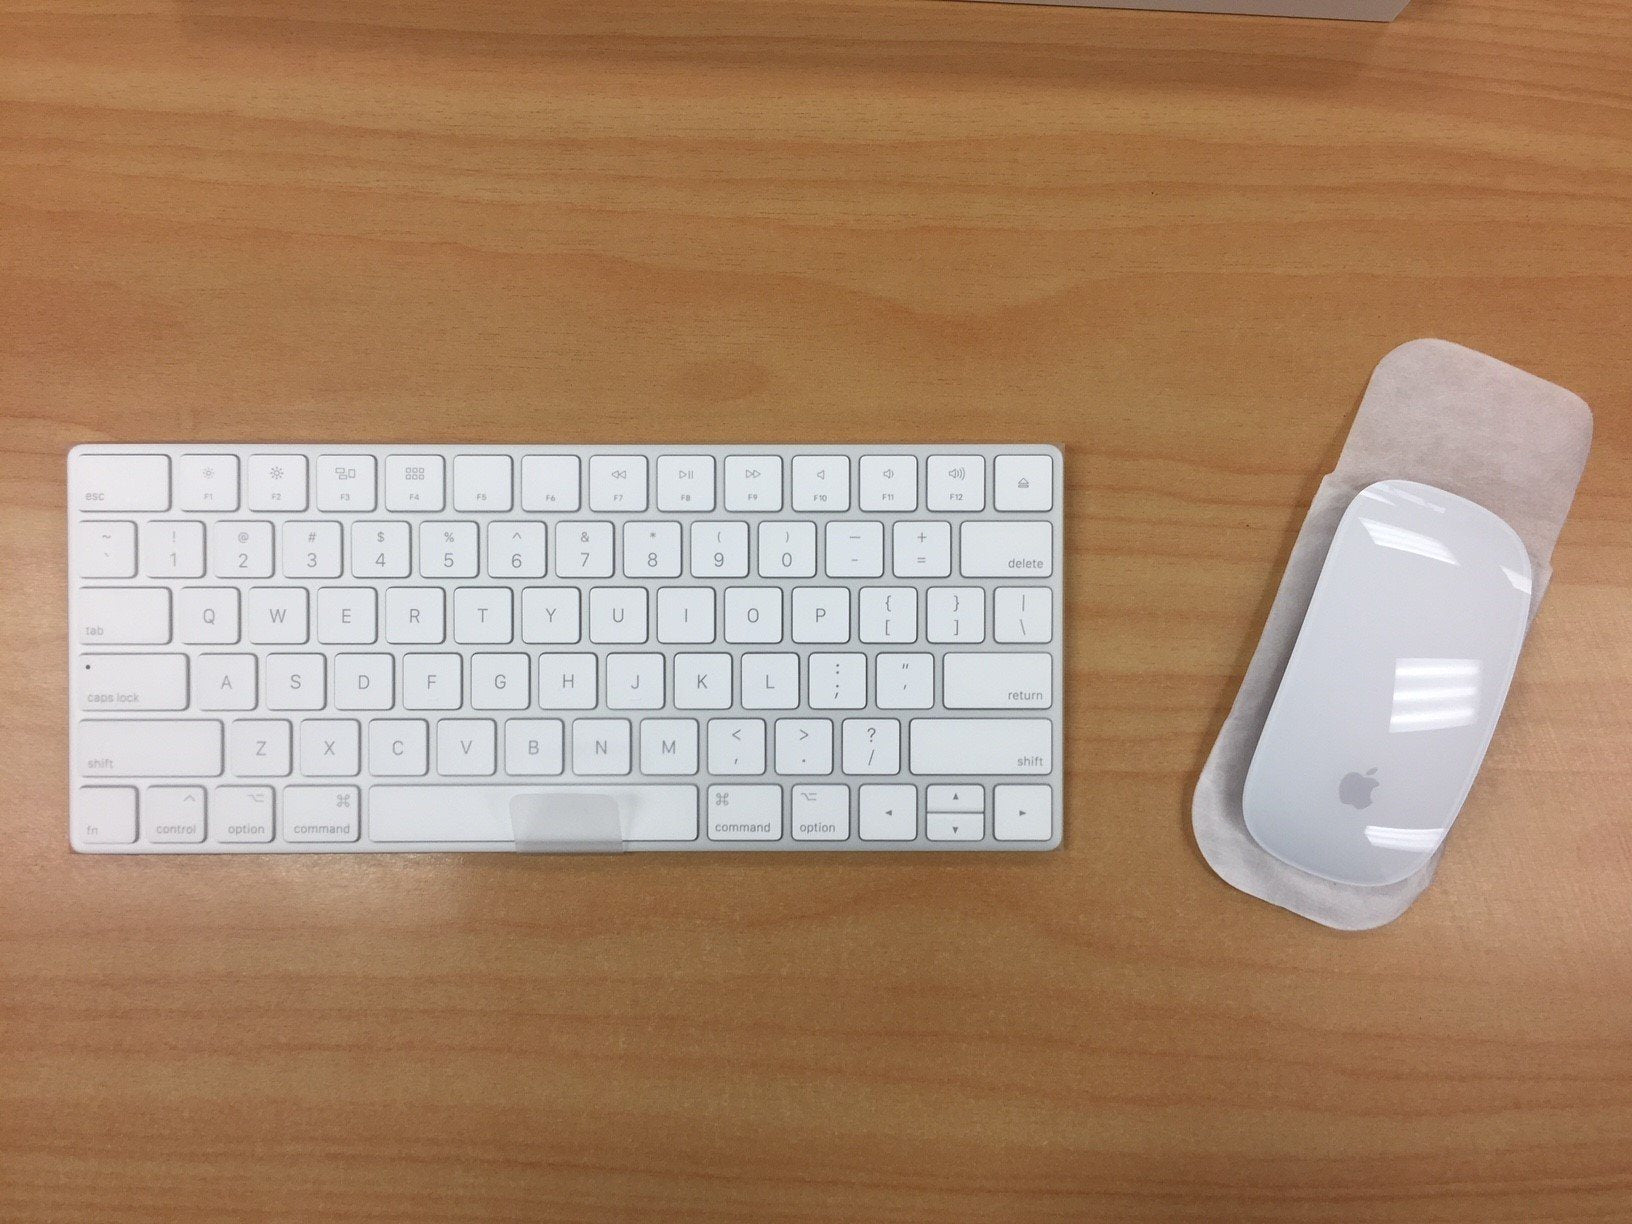 Apple Wireless  Magic Mouse & Keyboard - New In Original Box! SAVE $89 OFF RRP